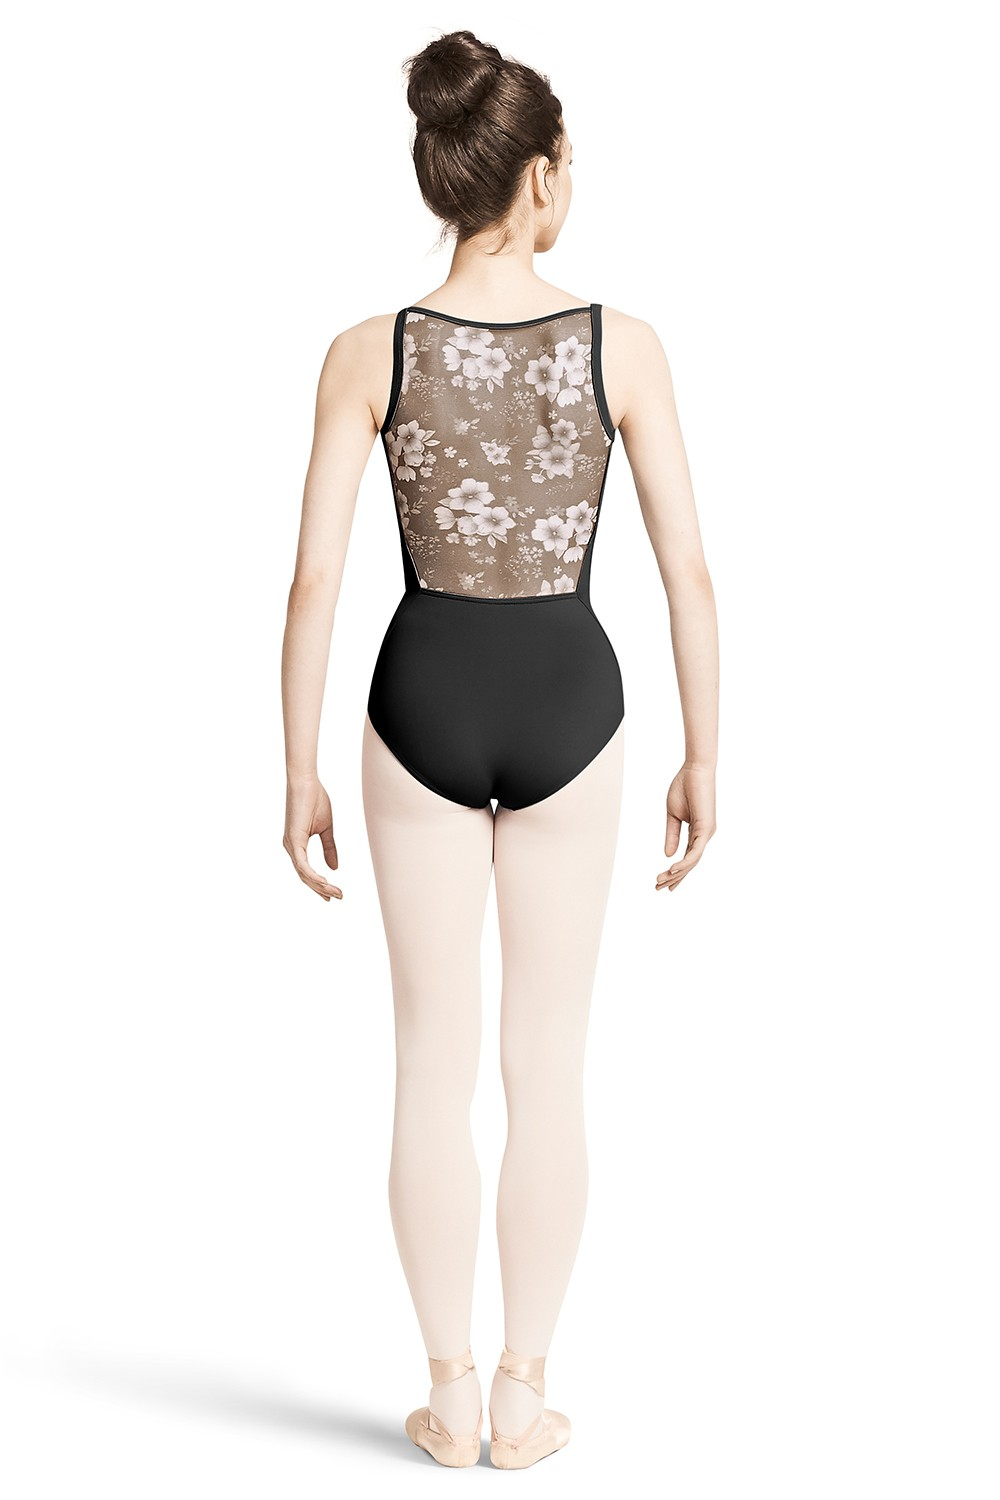 Body Con Spalline Sottili E Retro In Tessuto A Rete Con Stampa Floreale Women's Dance Leotards